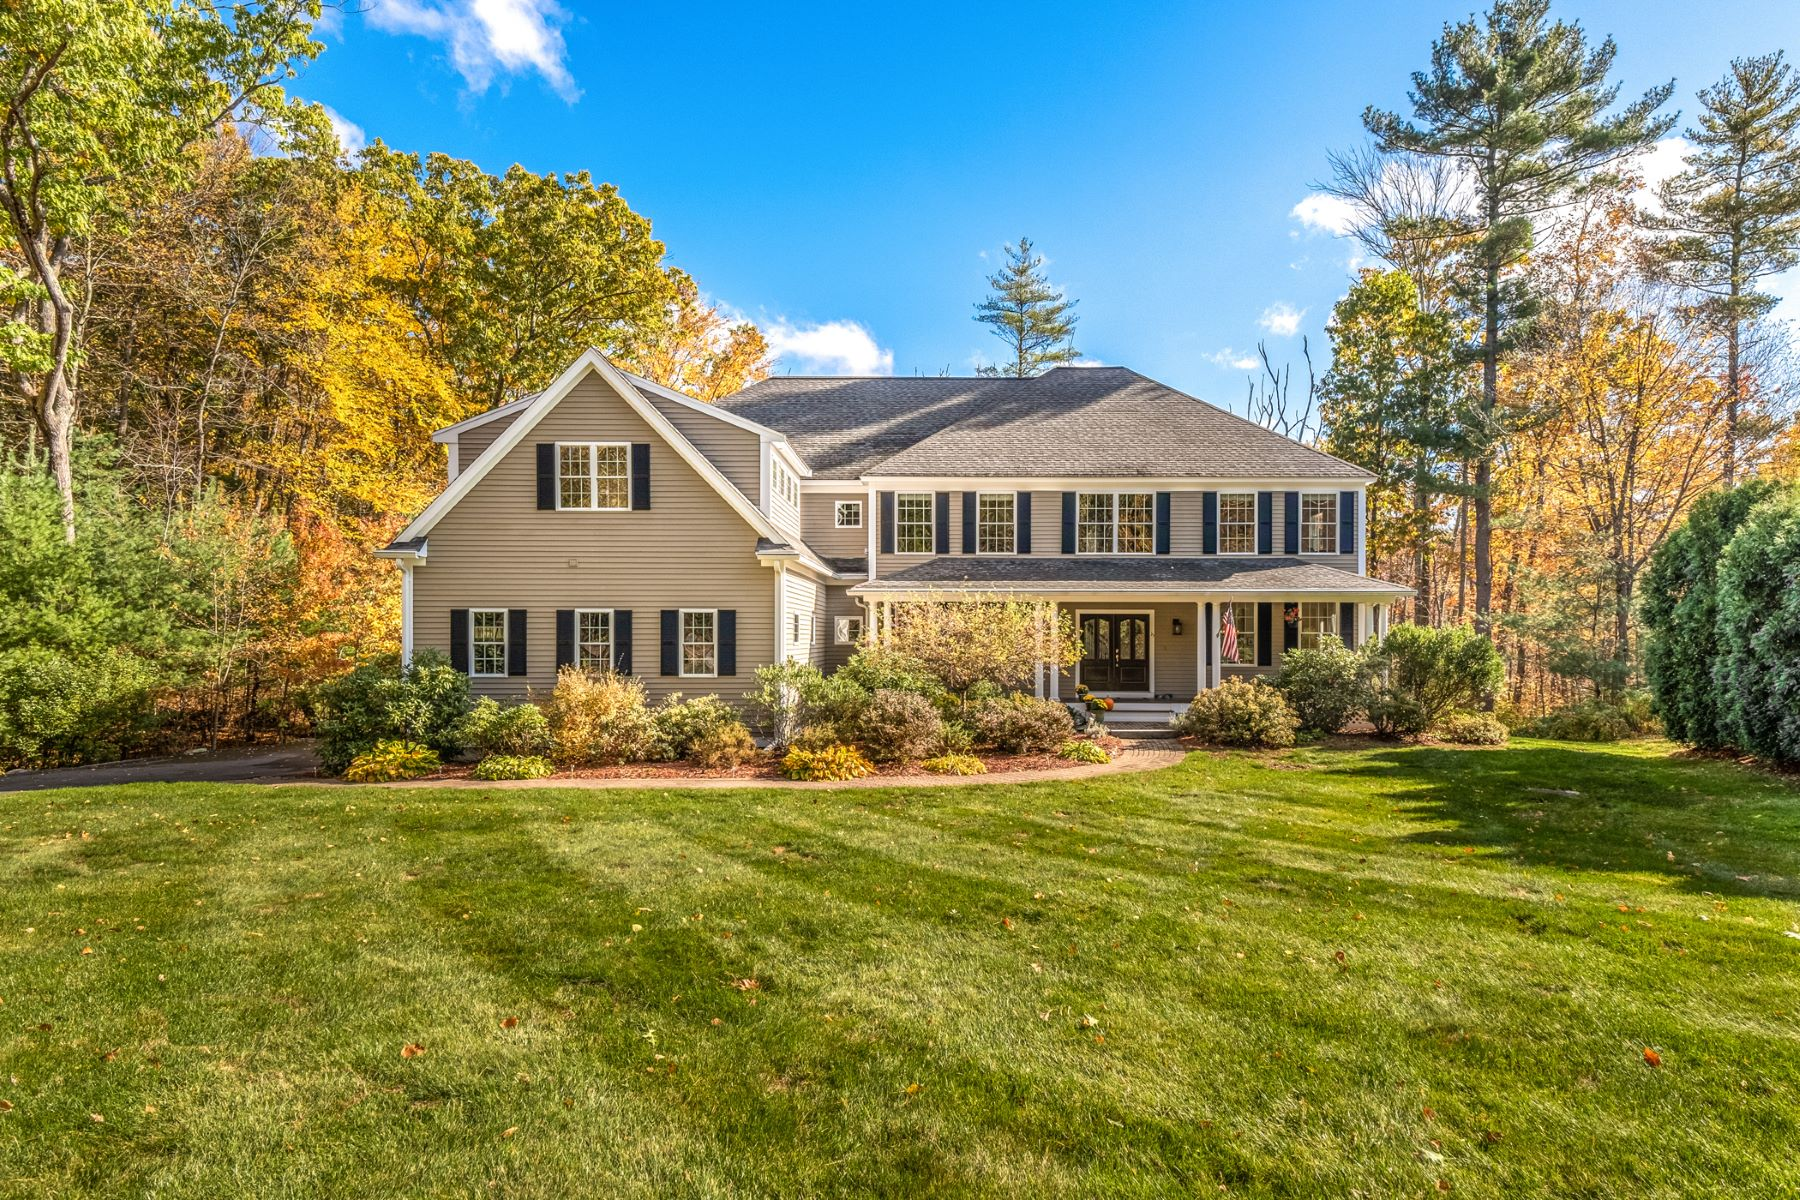 Single Family Homes for Sale at 15 Jackson Drive Acton, Massachusetts 01720 United States